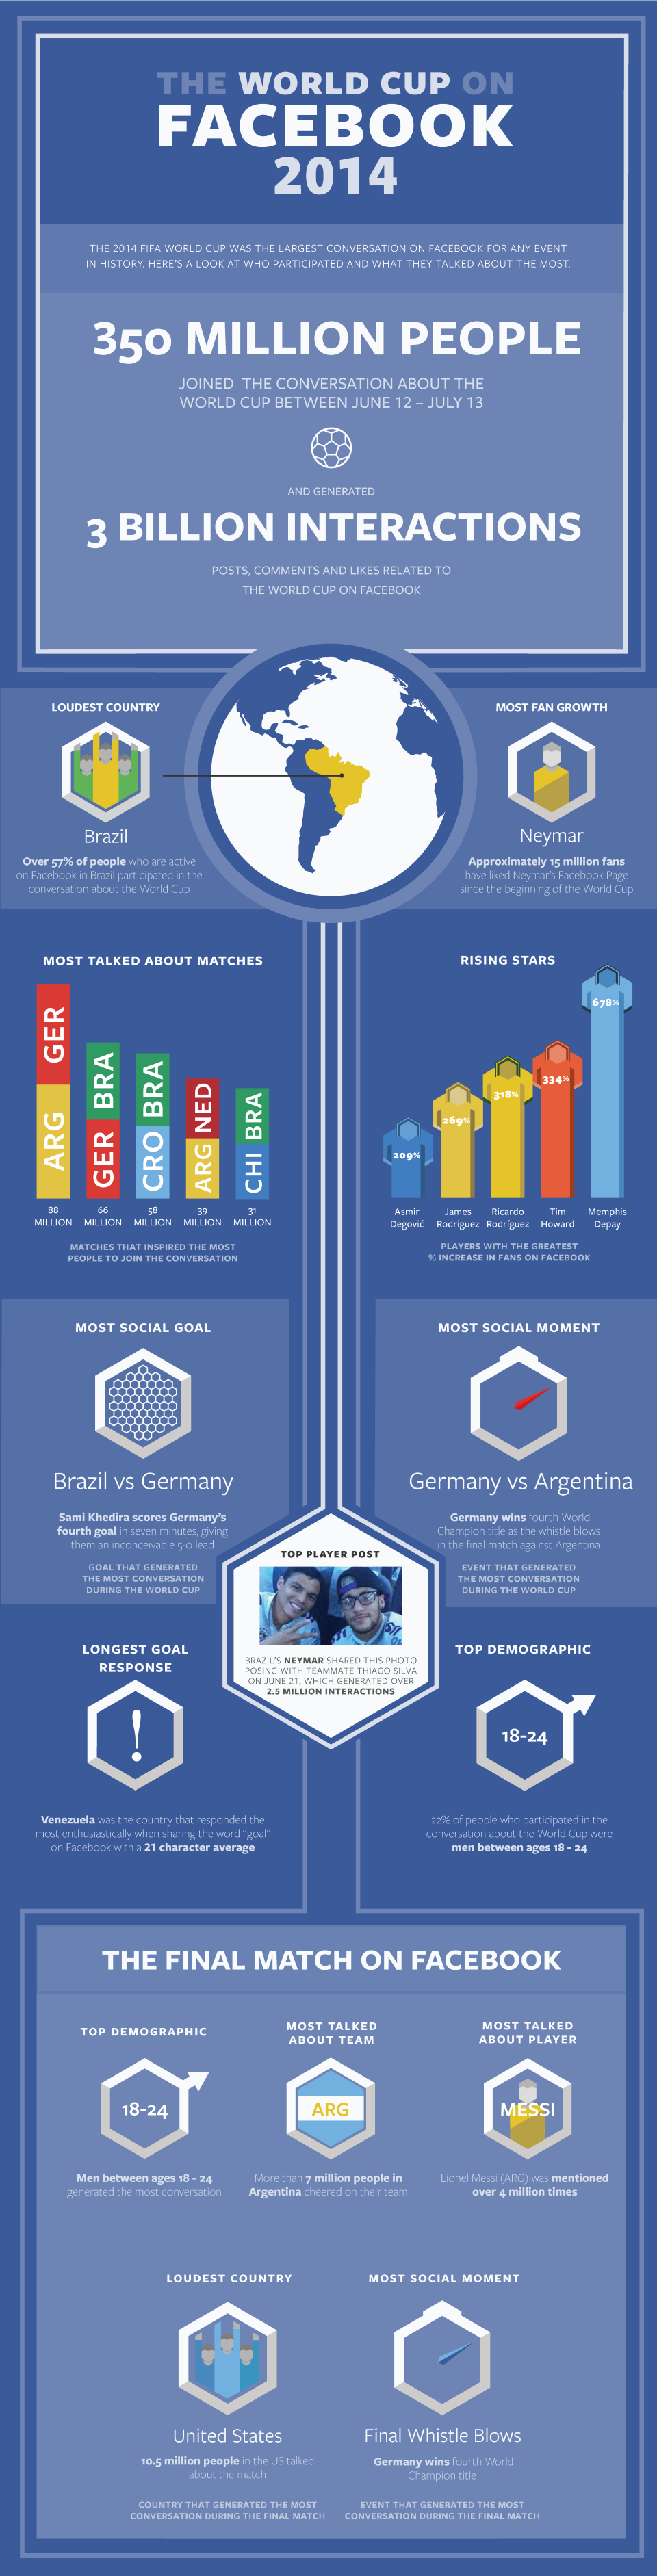 facebook record world cup 2014